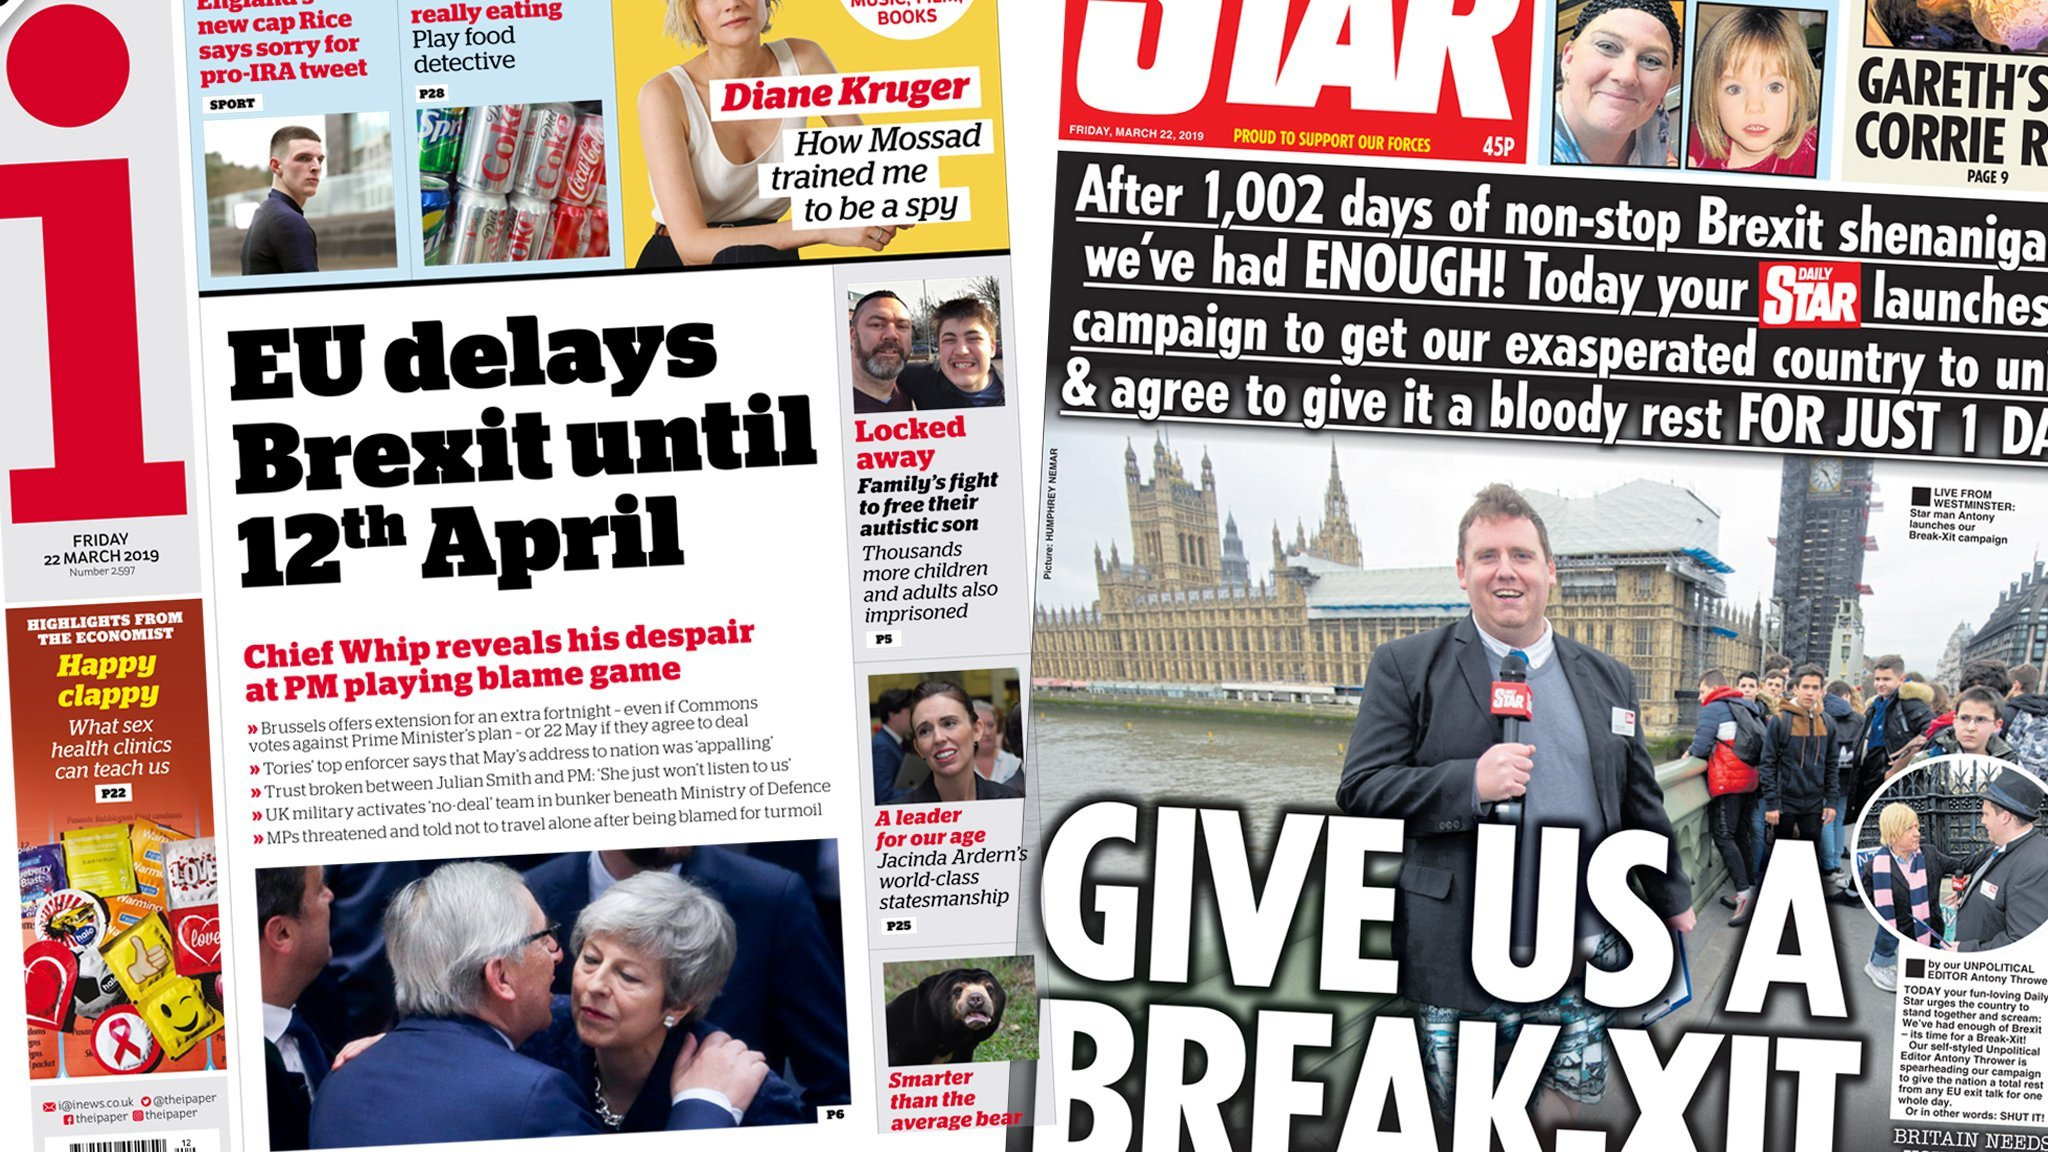 Newspaper headlines: Brexit 'emergency' and 'Break-xit' campaign